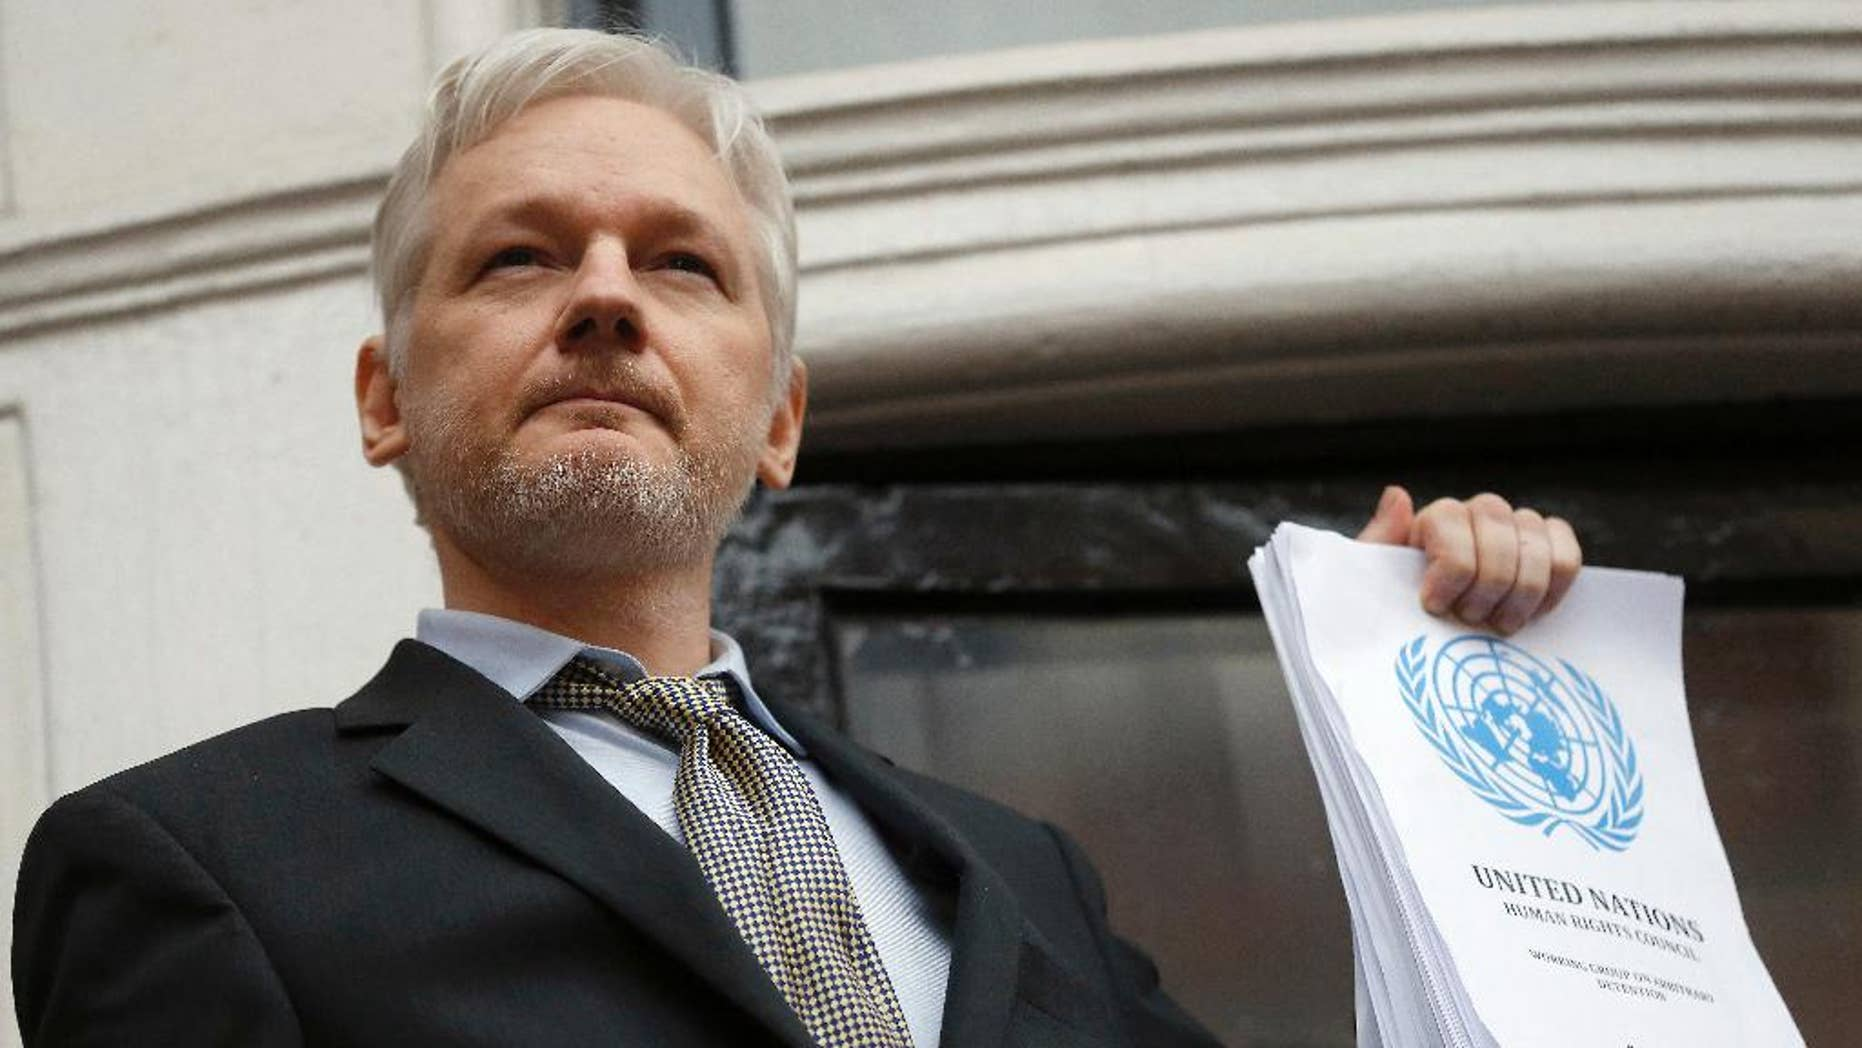 FILE - This is a Friday, Feb. 5, 2016 file photo of WikiLeaks founder Julian Assange holds a U.N. report as he speaks on the balcony of the Ecuadorian Embassy in London.  A U.N. panel is sticking by its opinion that WikiLeaks founder Julian Assange is a victim of arbitrary detention, rejecting a request by Britain to review the case. The Working Group on Arbitrary Detention found that Britain had not presented enough new information to merit a new examination. The panel made the decision at a meeting last week, the U.N. human rights office said Wednesday, Nov. 30, 2016. (AP Photo/Frank Augstein, File)